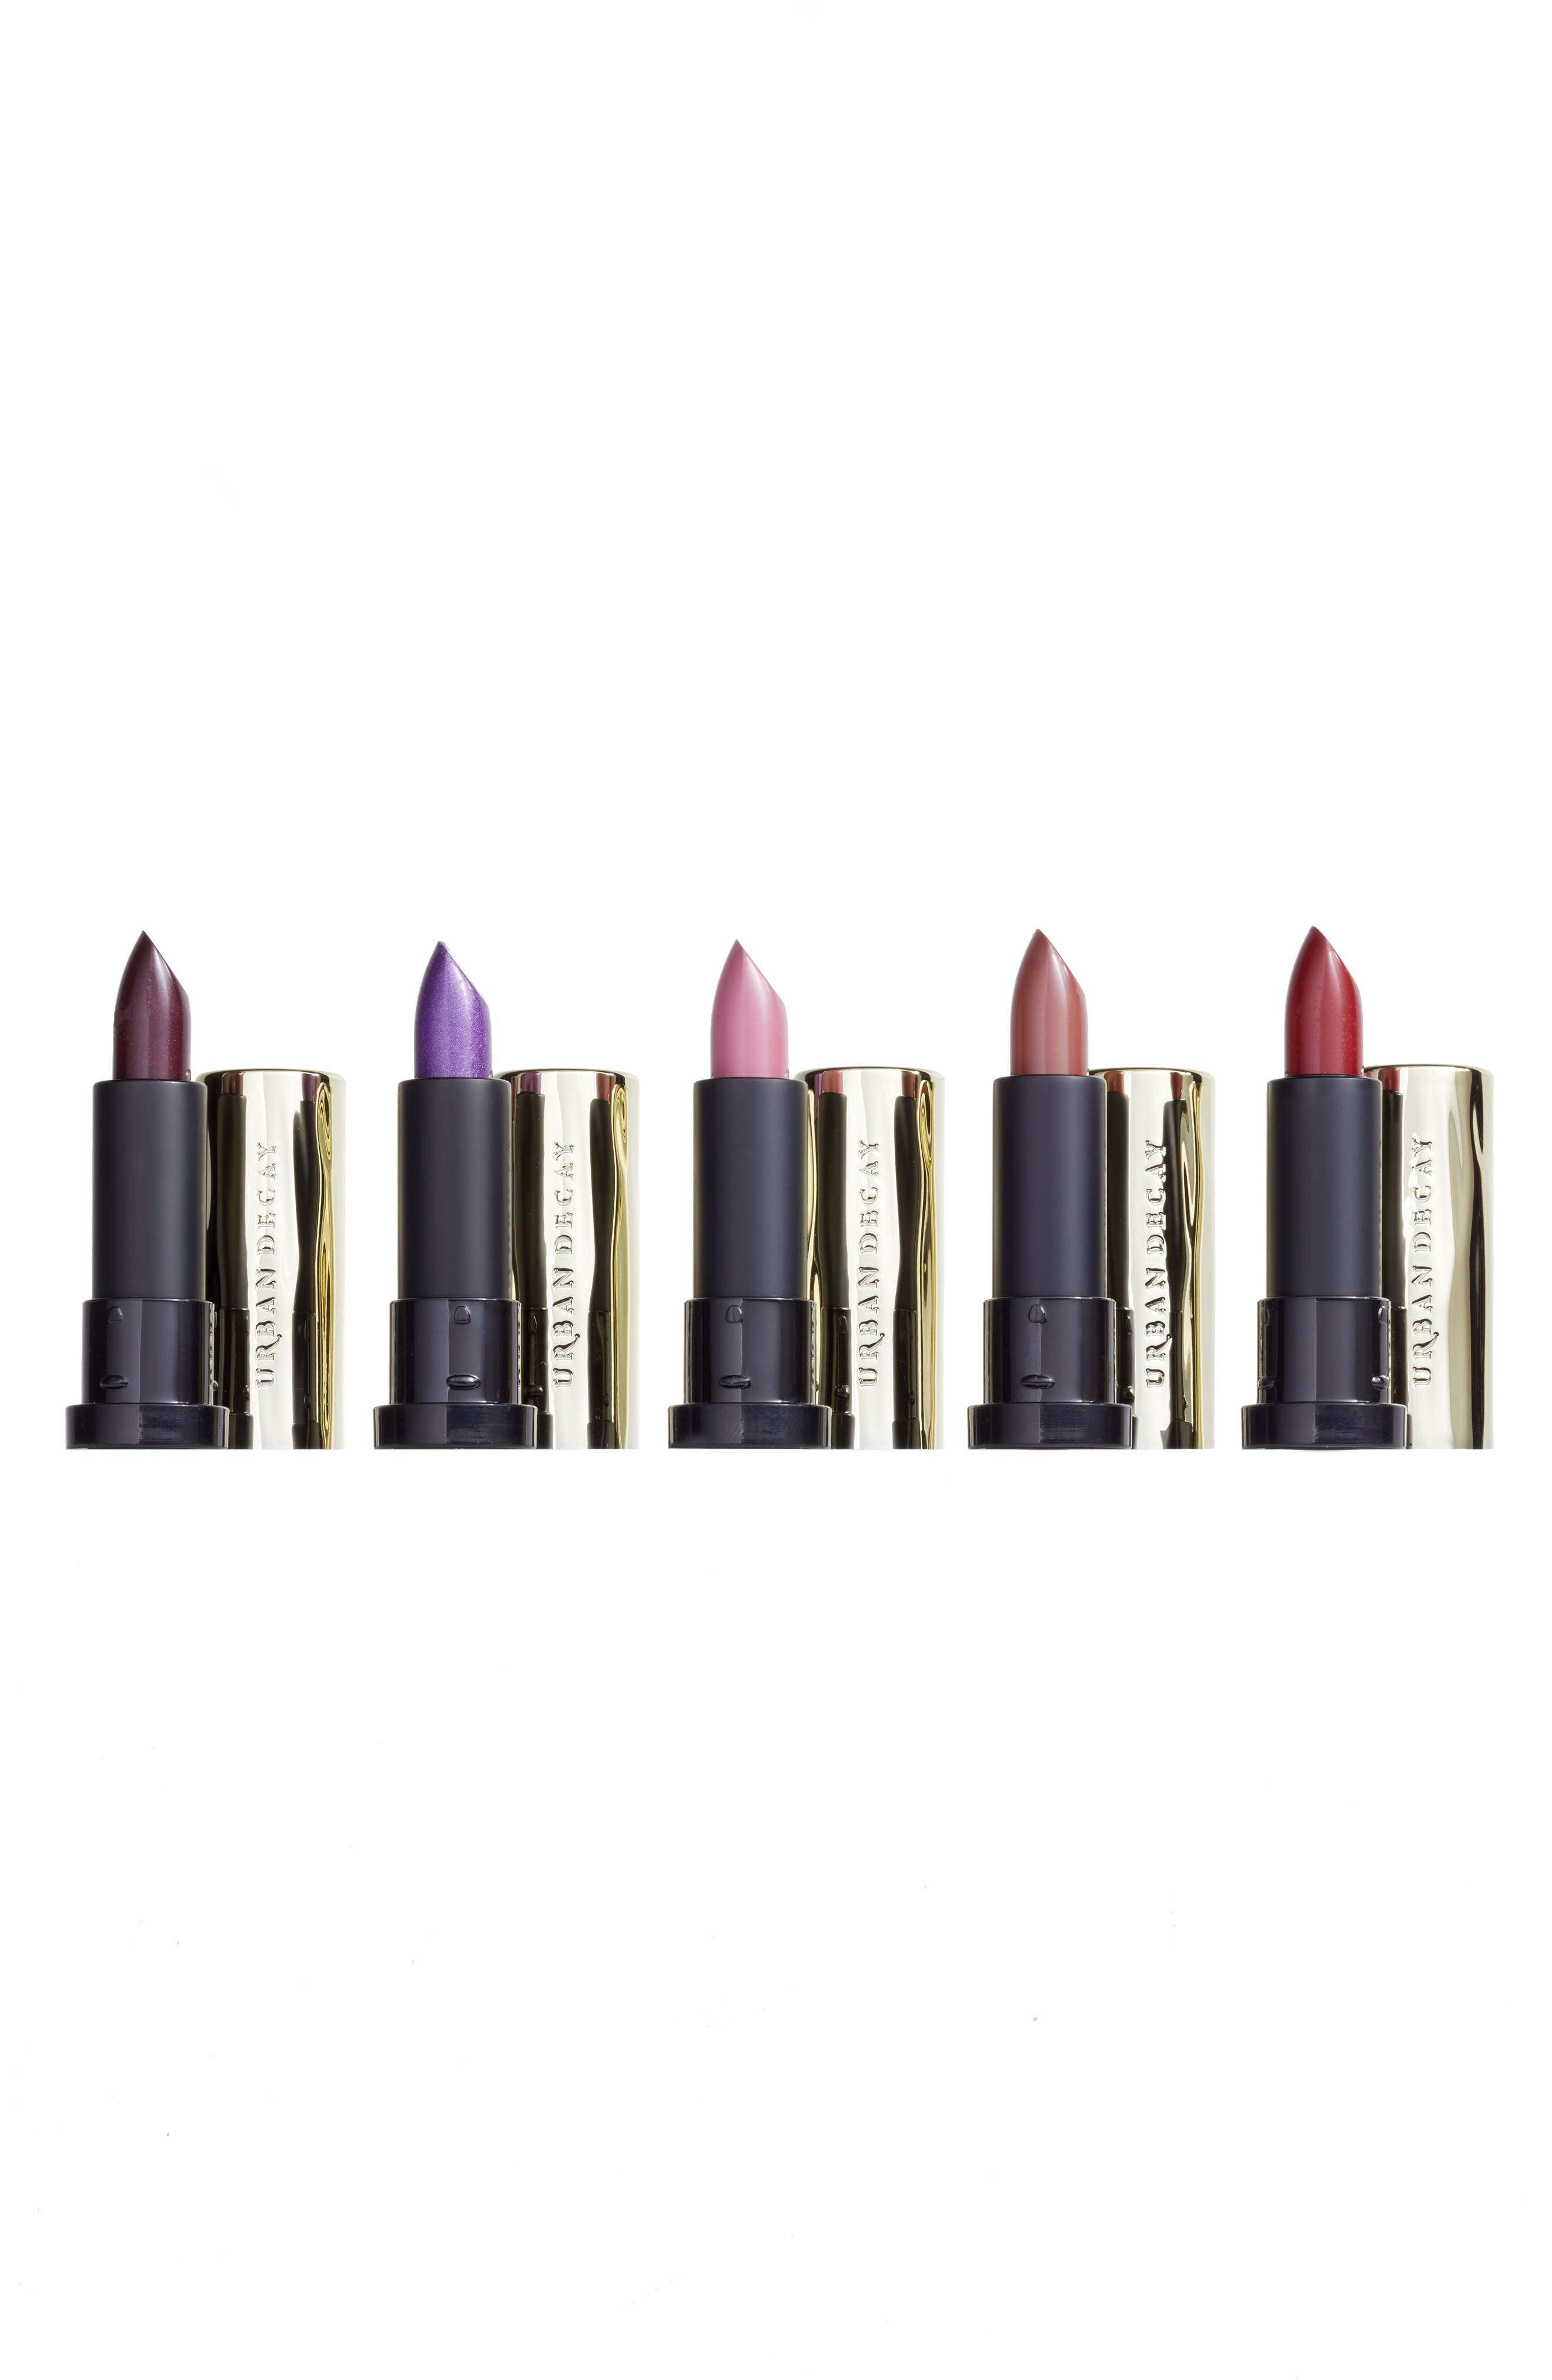 Urban Decay Little Vices 5-Piece Lipstick Sample Set